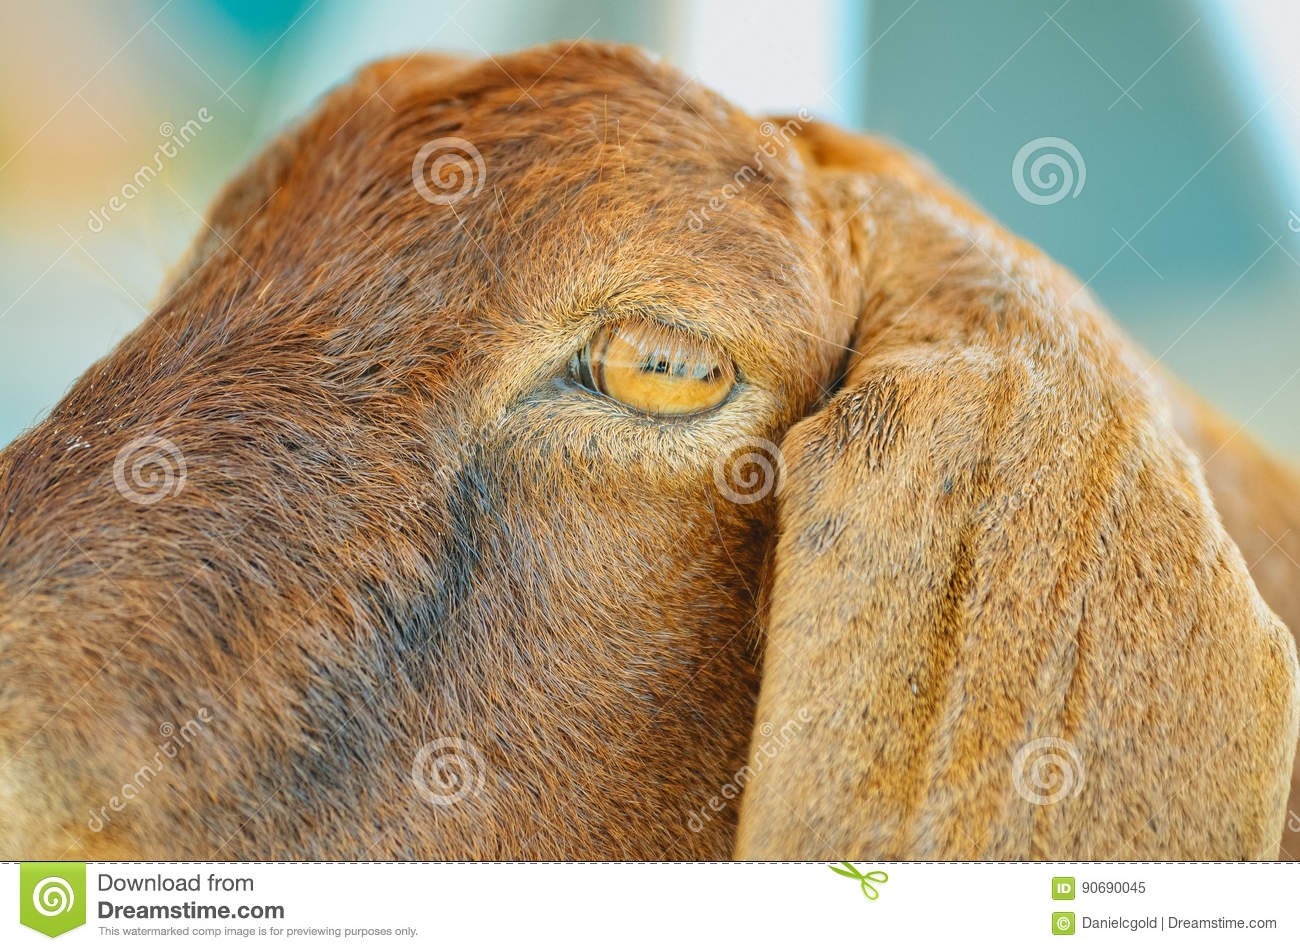 the eye of a goat stock image image of hairy desktop 90690045